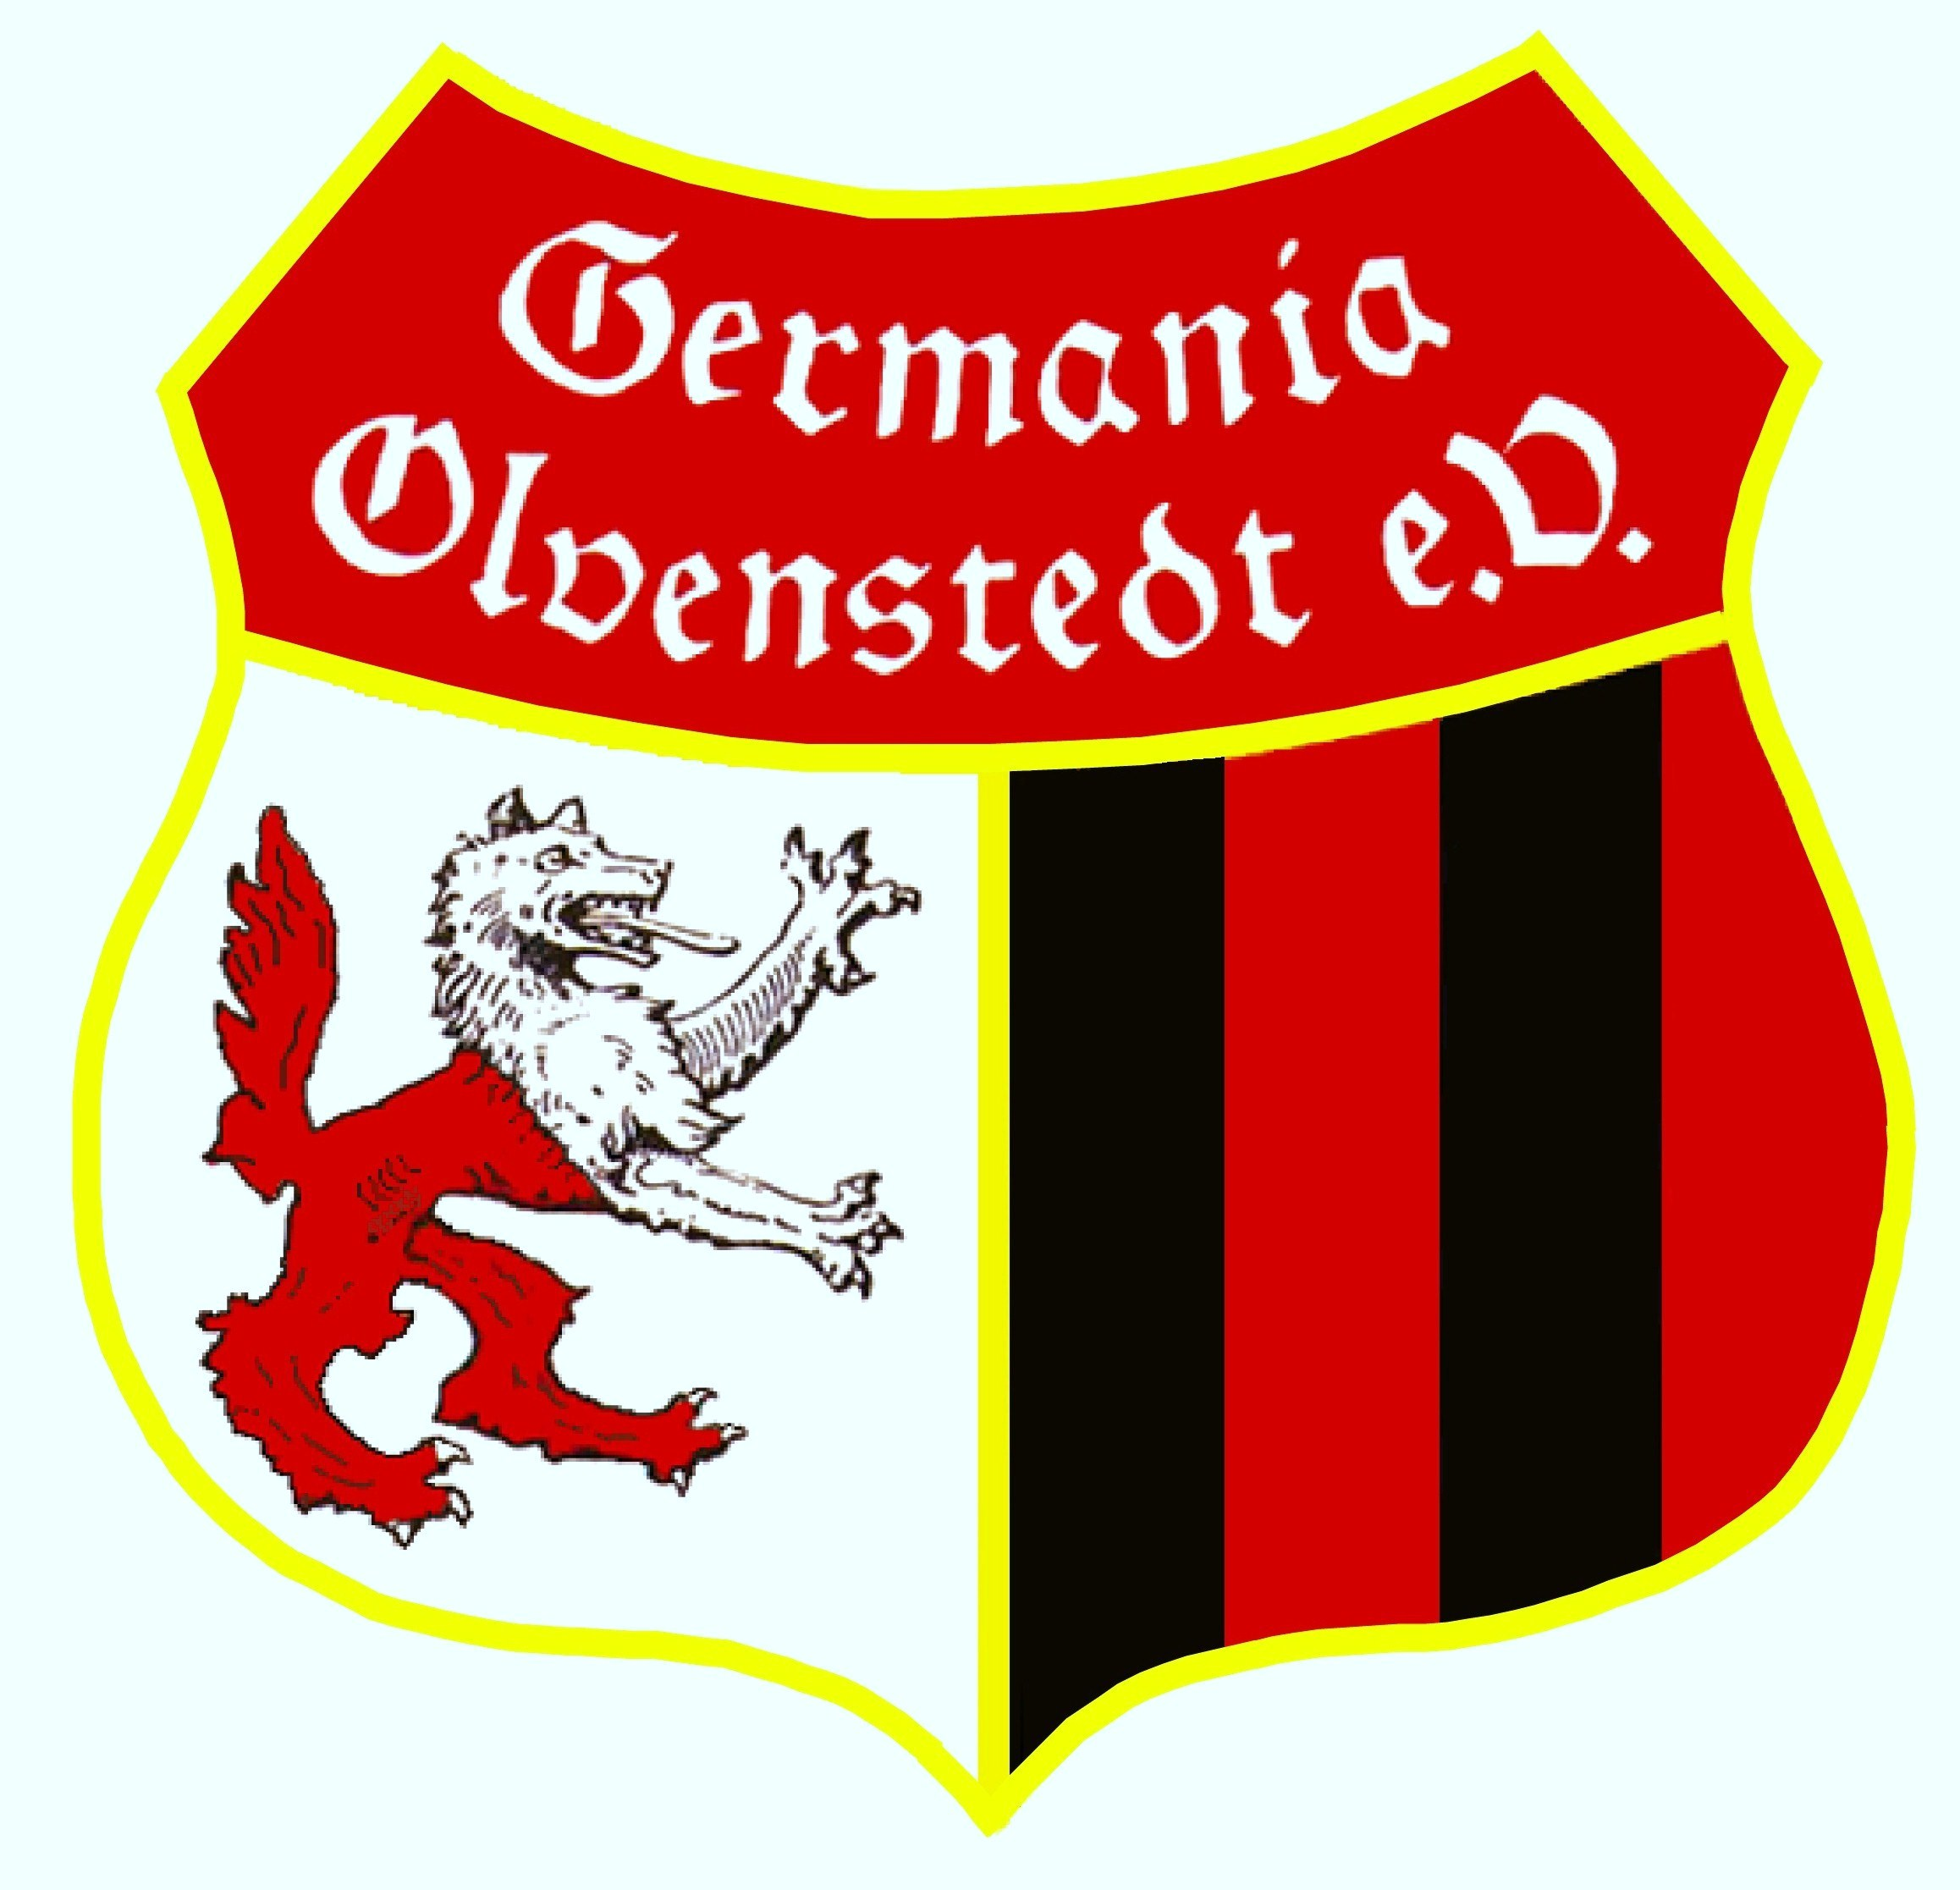 Germania Olvenstedt